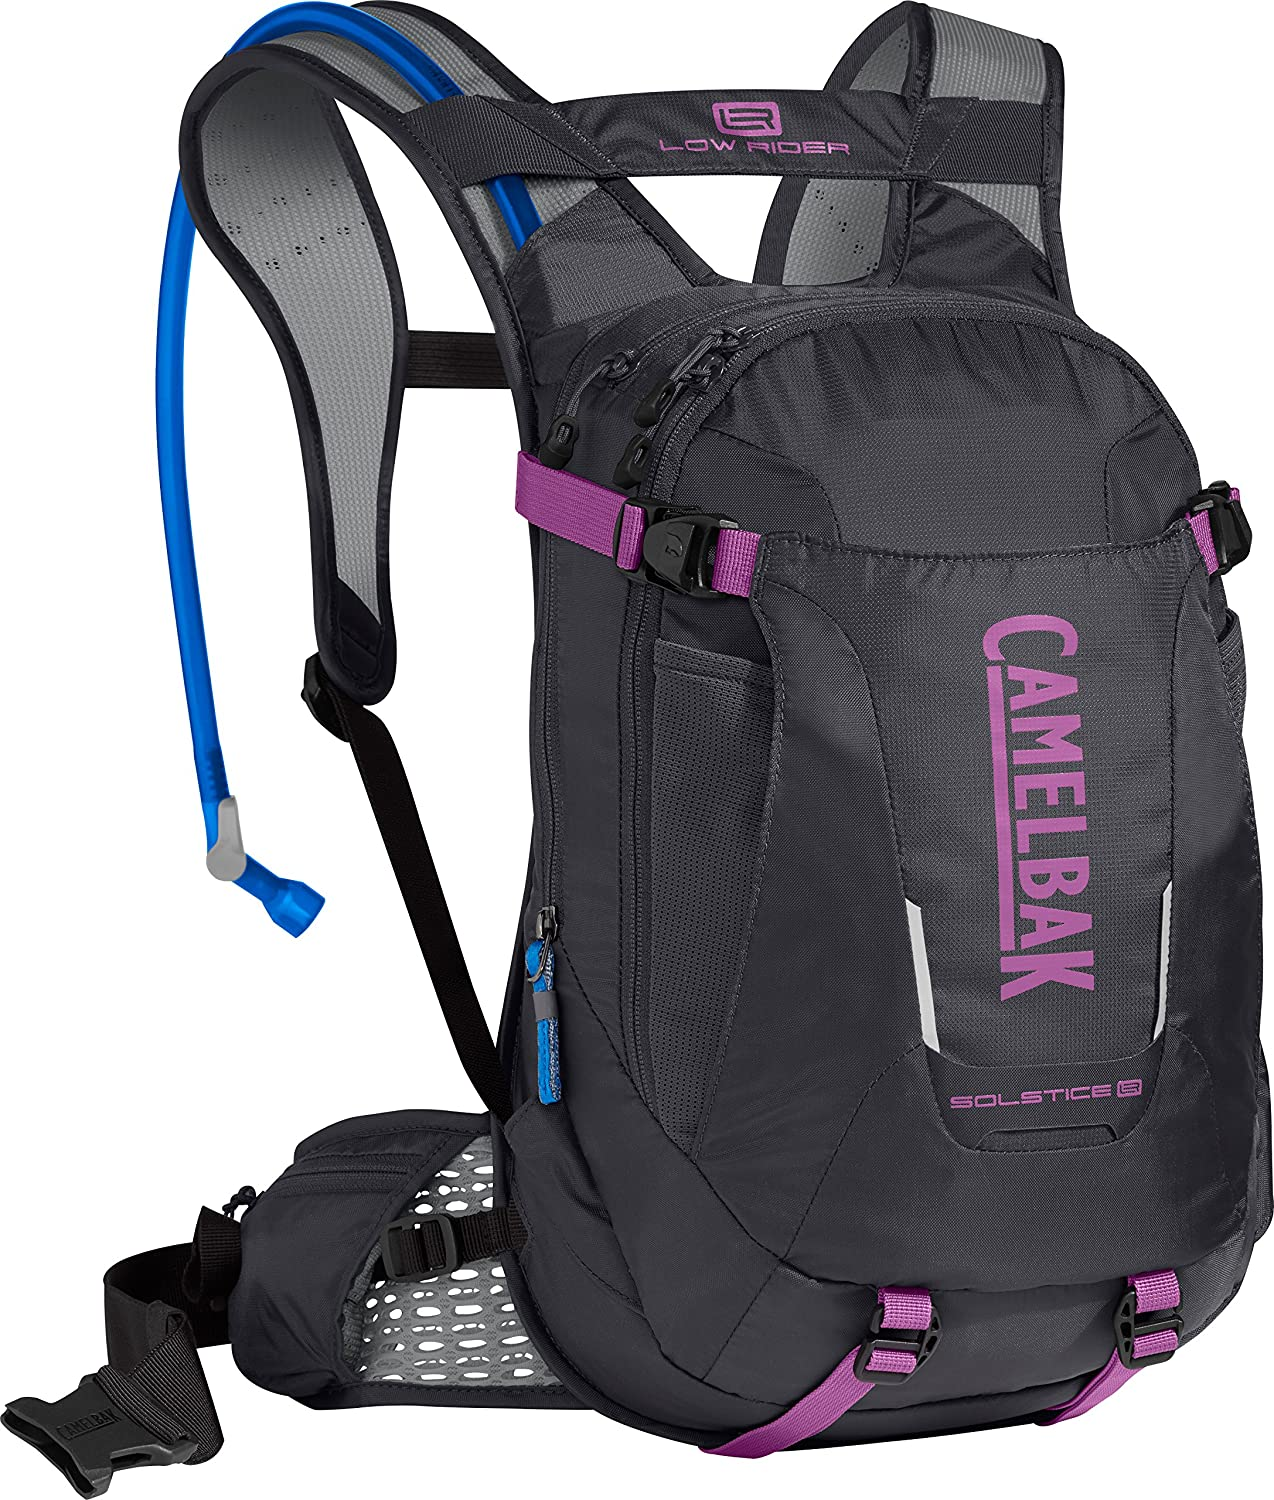 CamelBak 2018 Women s Solstice LR 10 Hydration Pack, 100oz